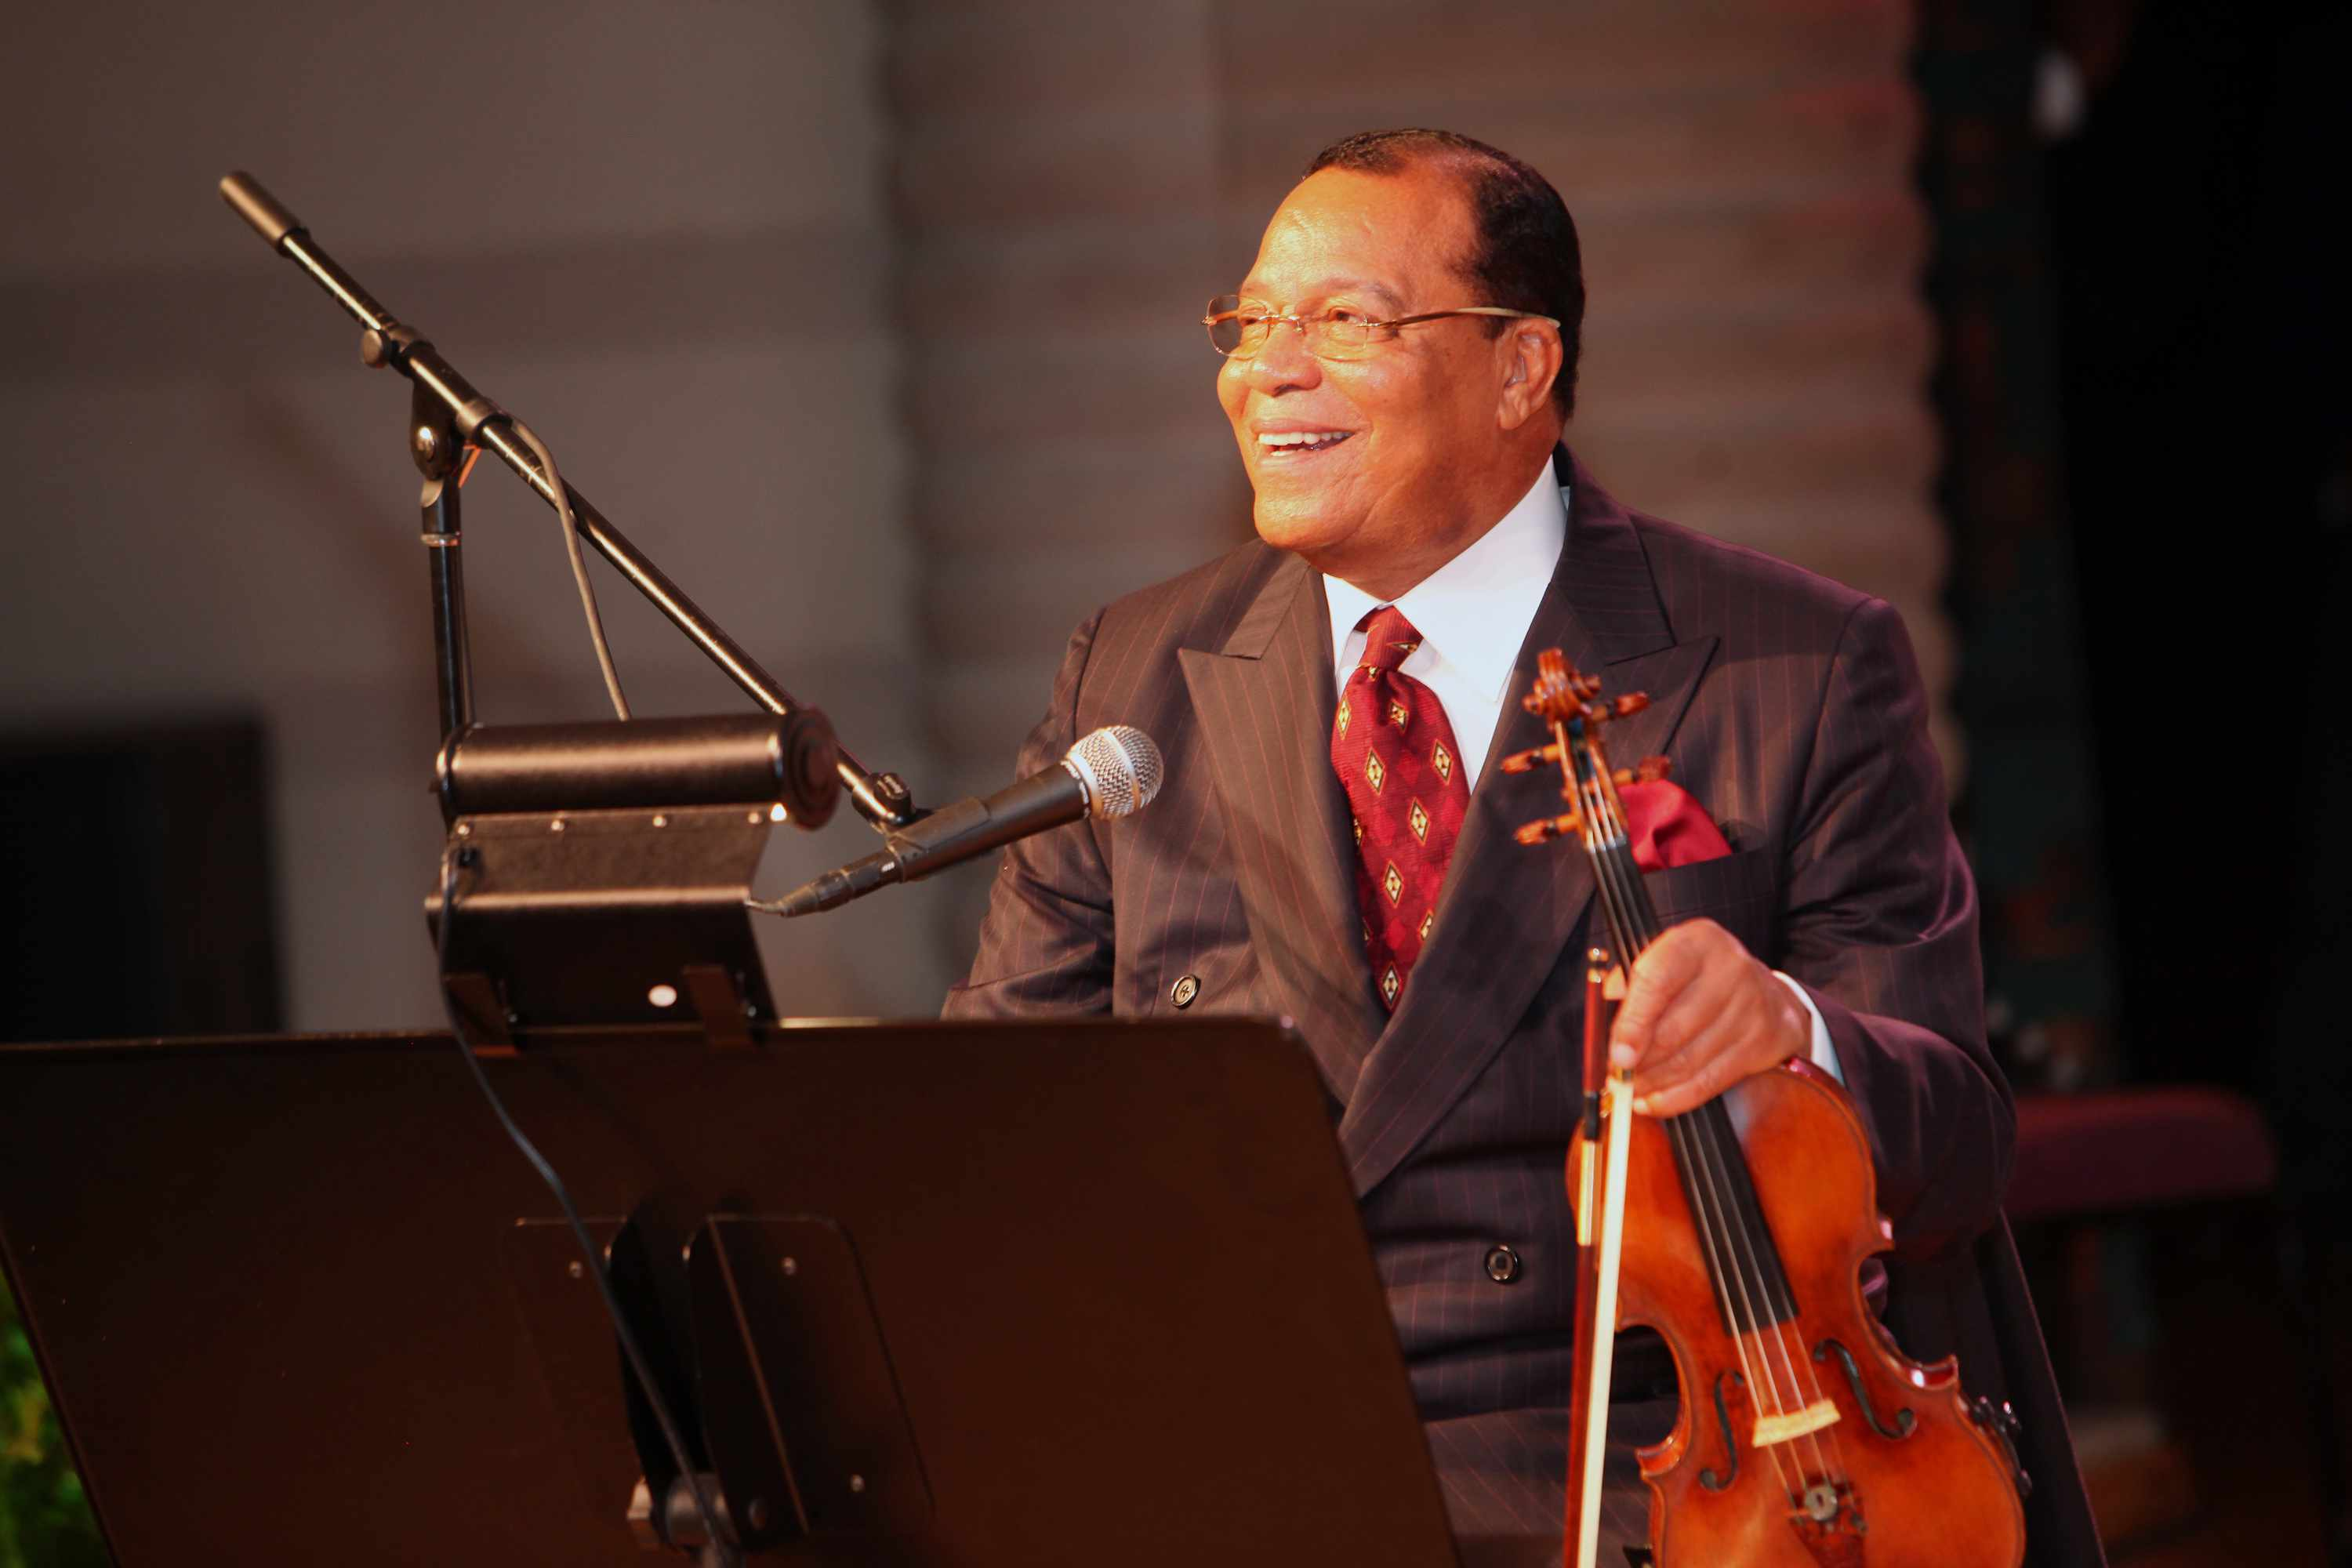 Minister Louis Farrakhan holding a violin and smiling